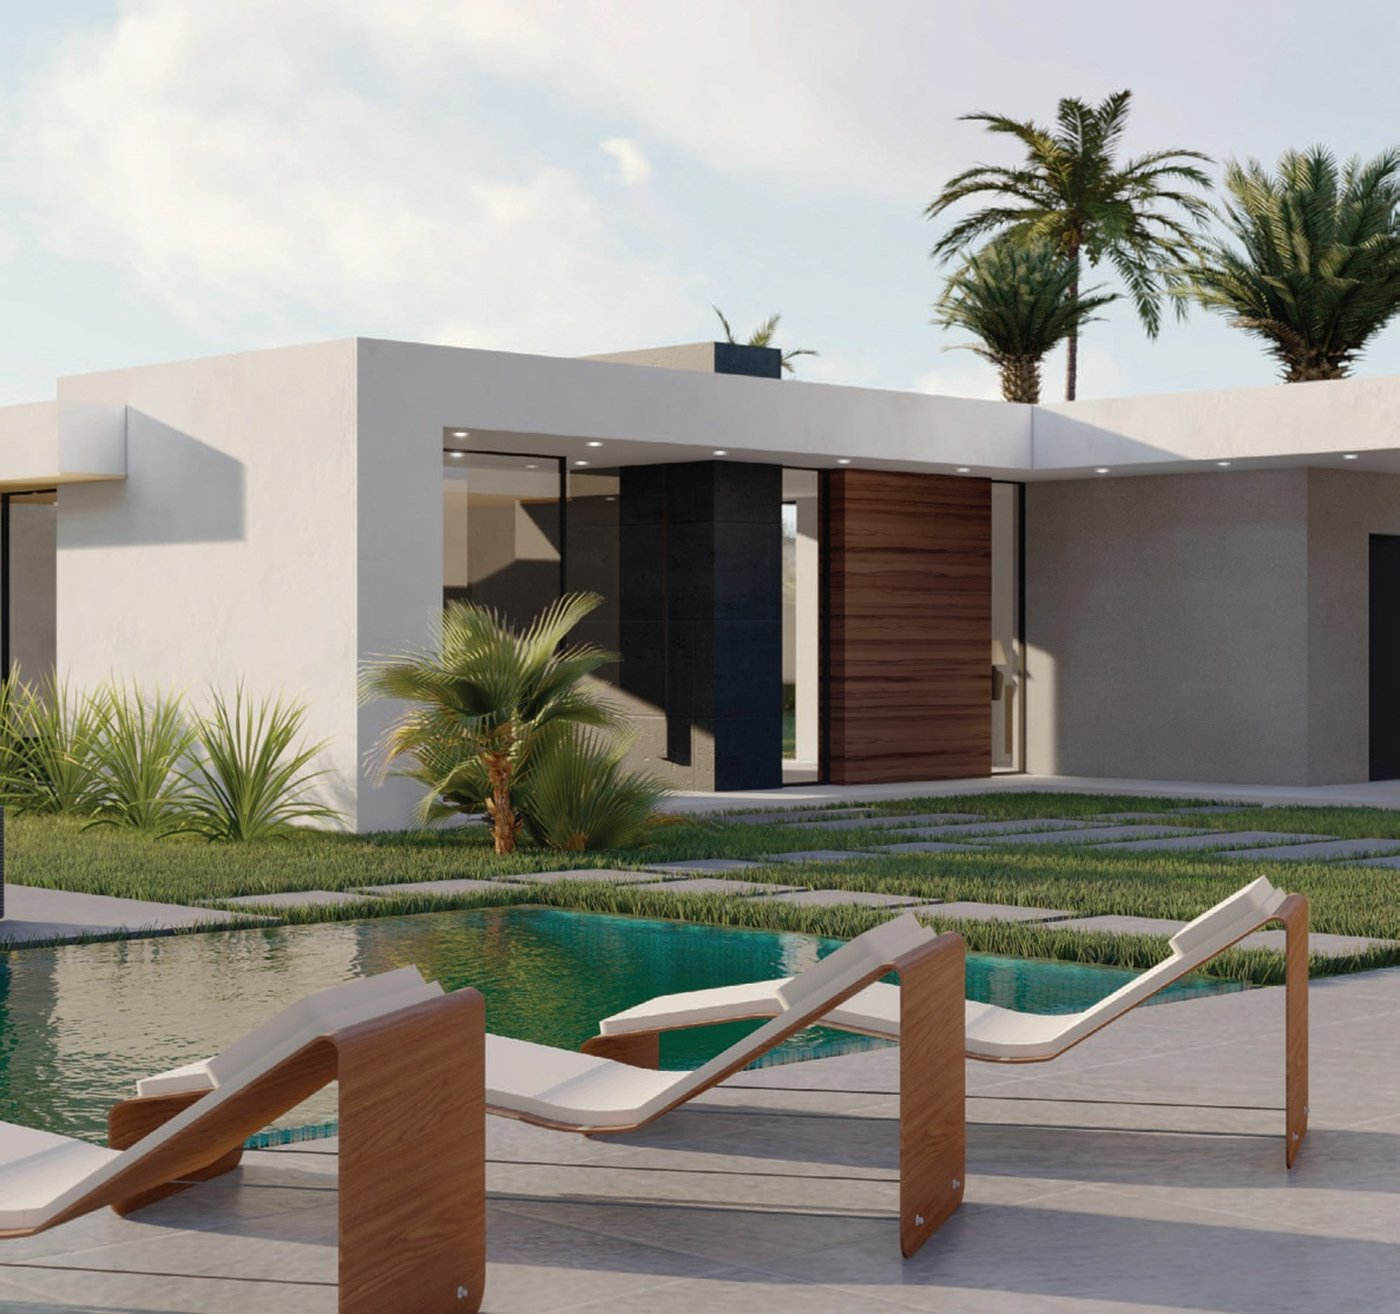 RENDERINGS COURTESY OF LAUNCH REAL ESTATE